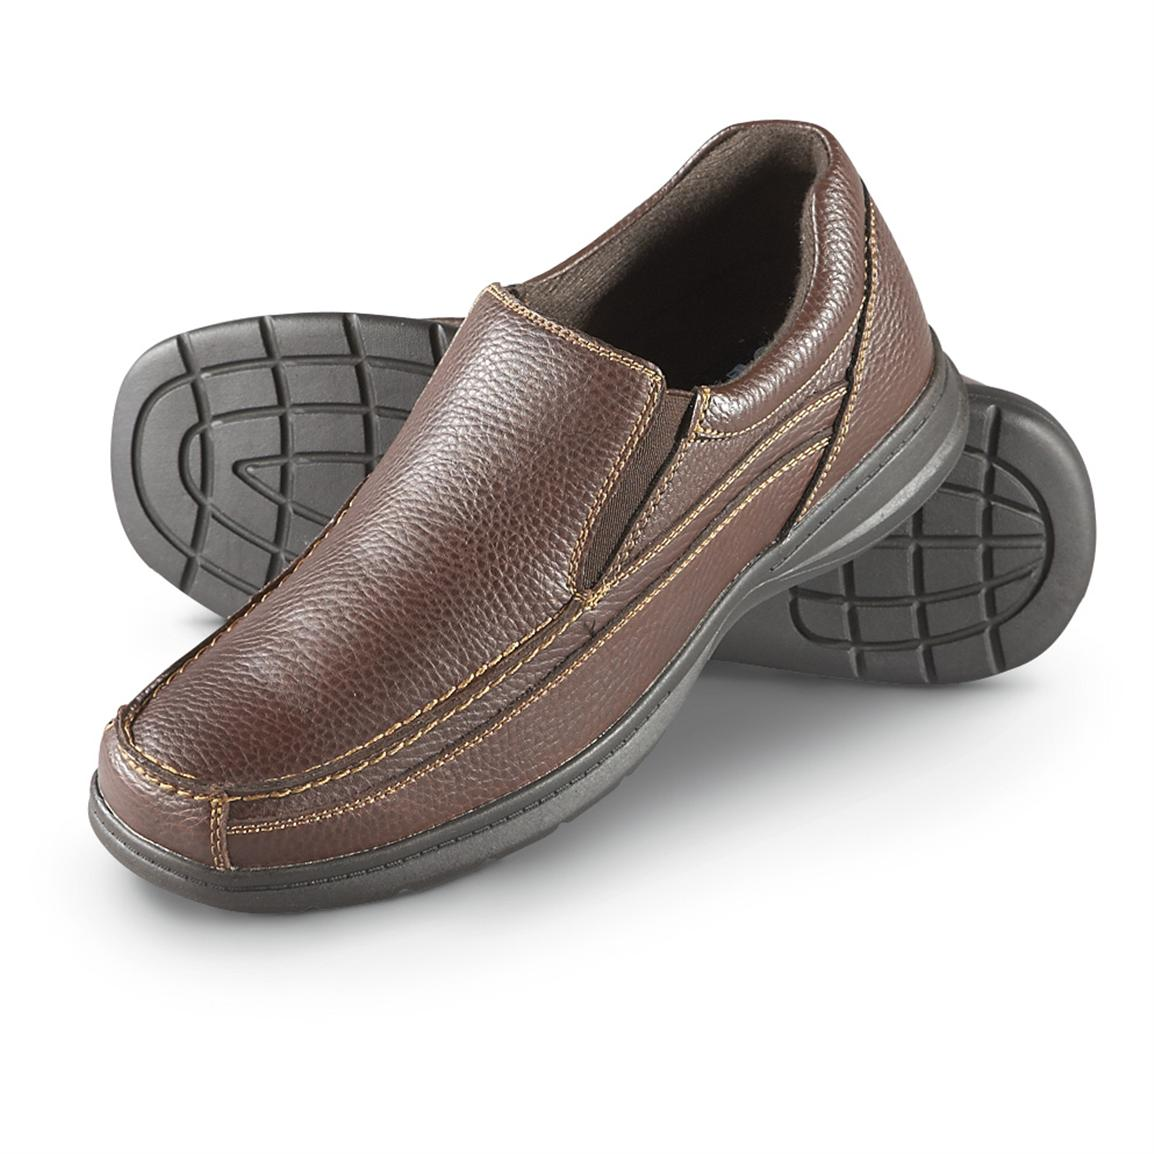 Shop for dr scholls shoes mens online at Target. Free shipping & returns and save 5% every day with your Target REDcard.